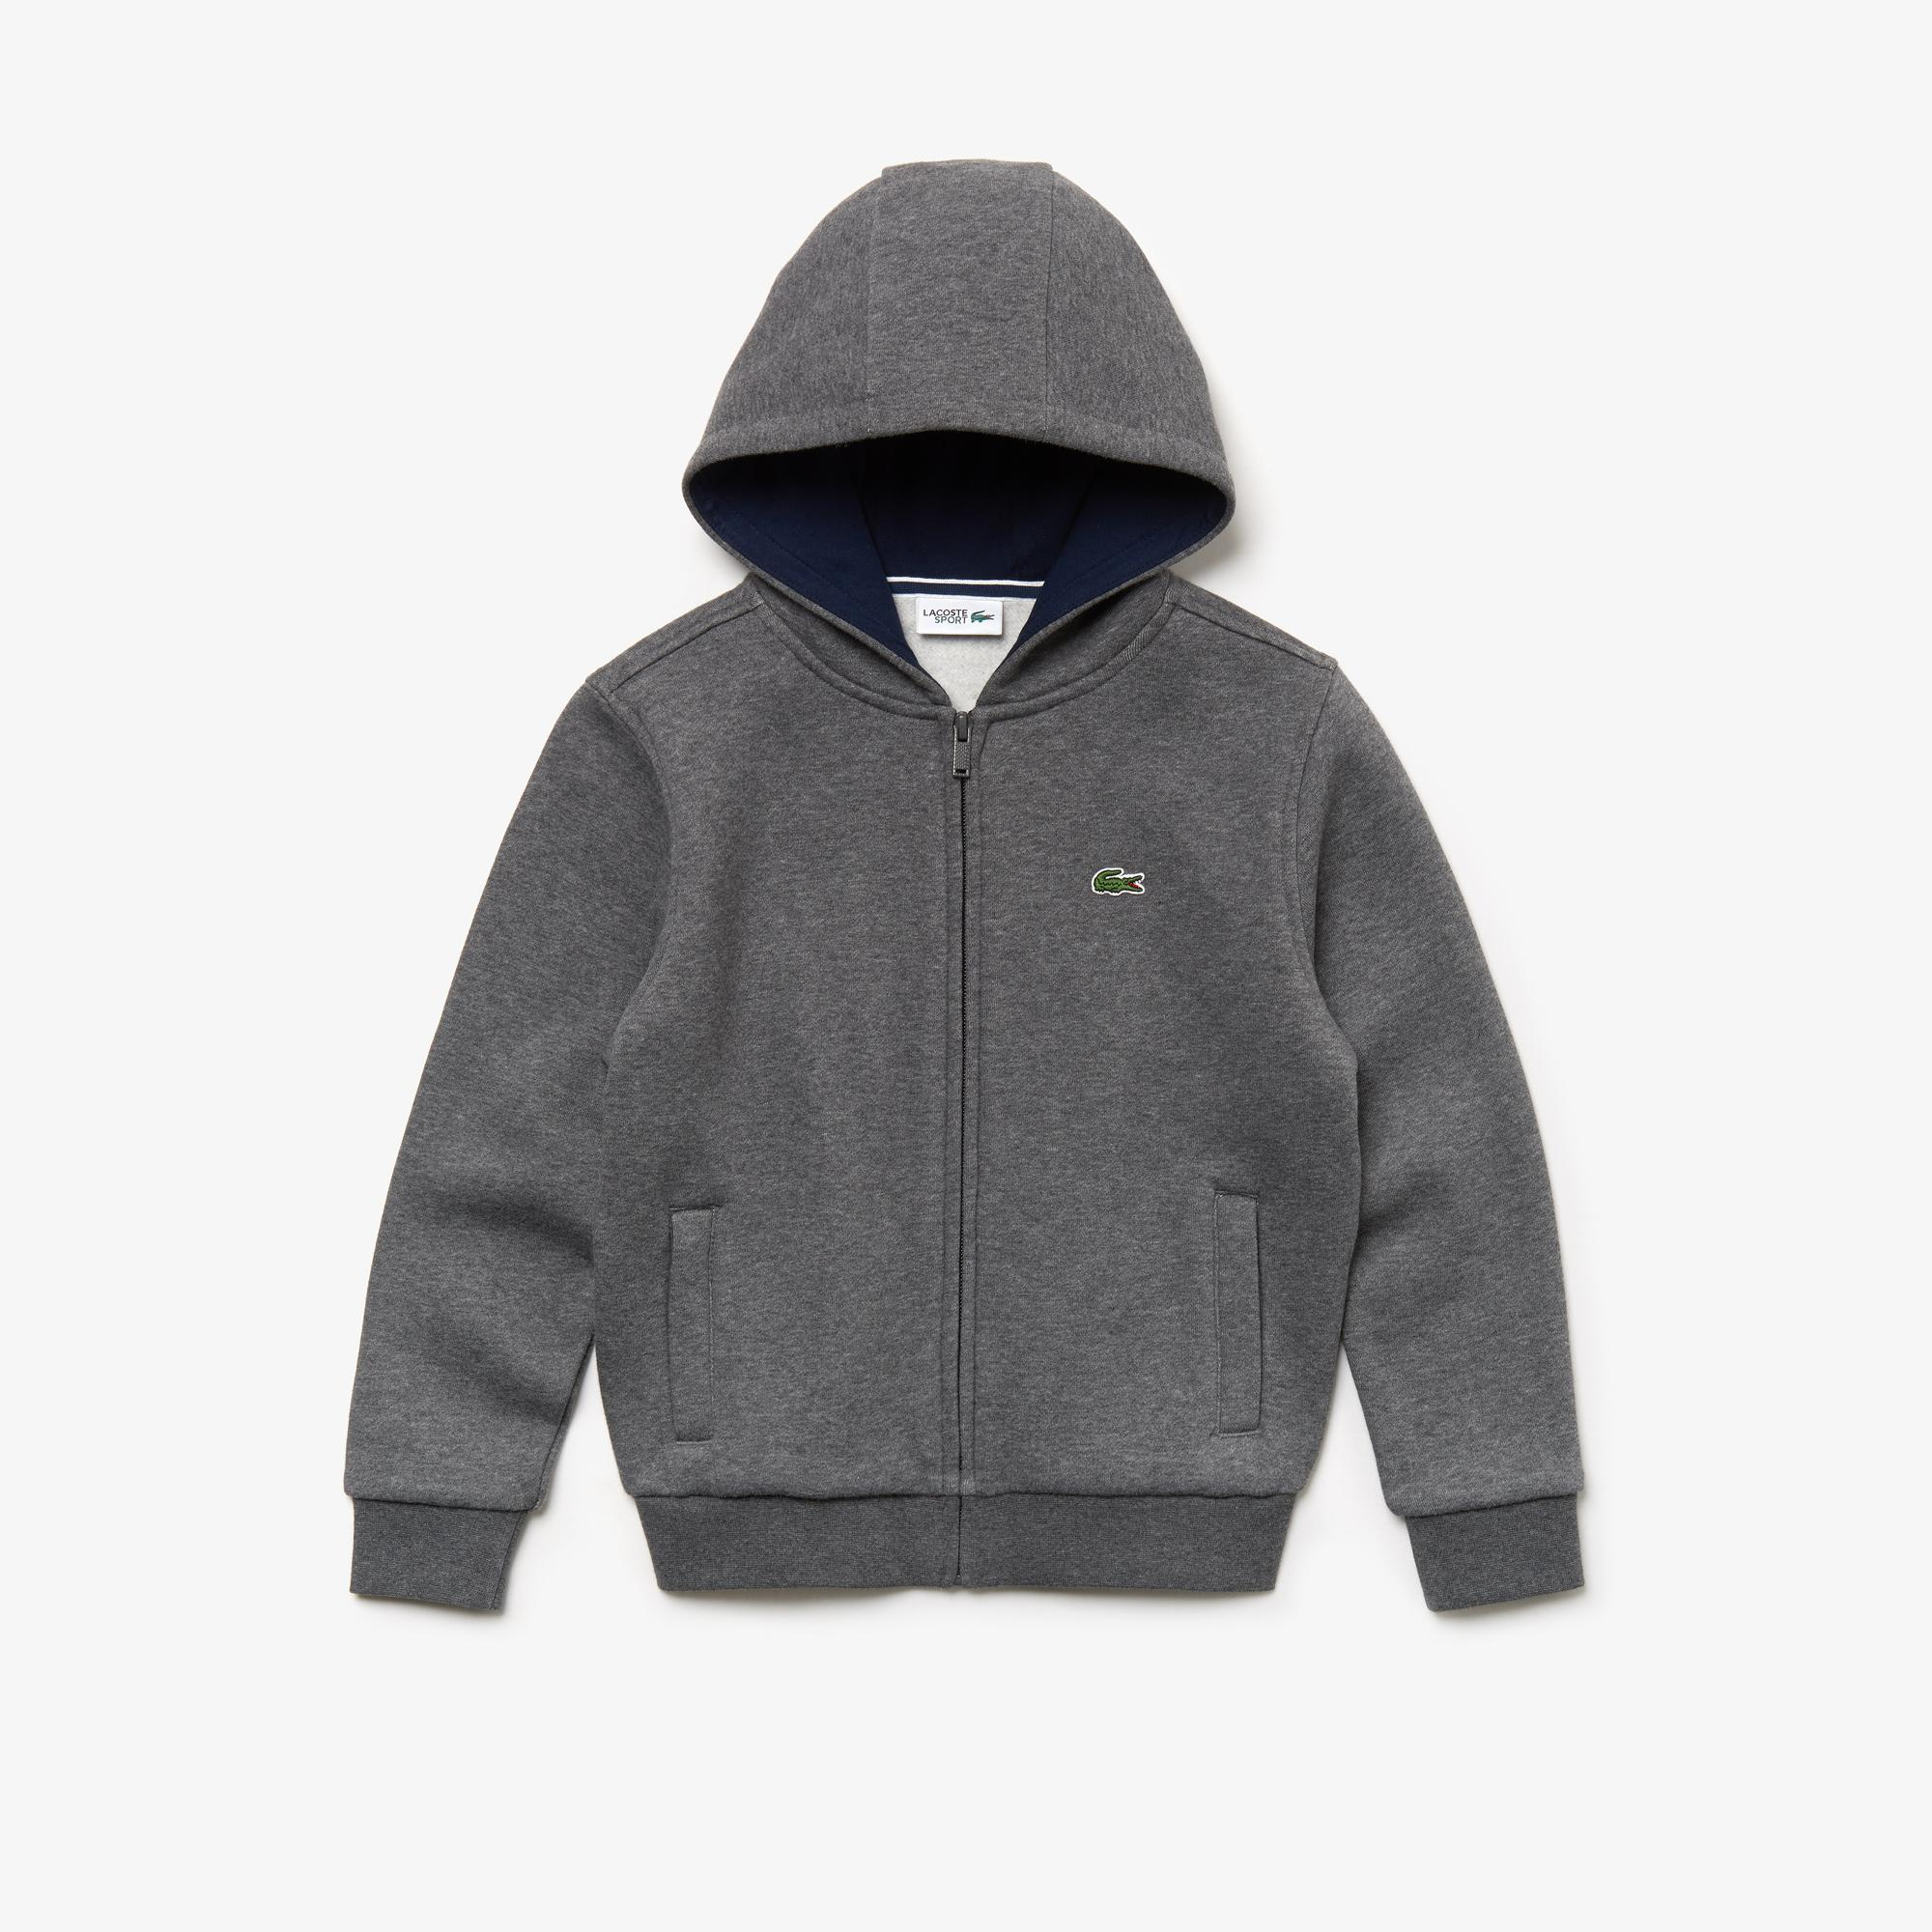 Lacoste Children sweatshirt